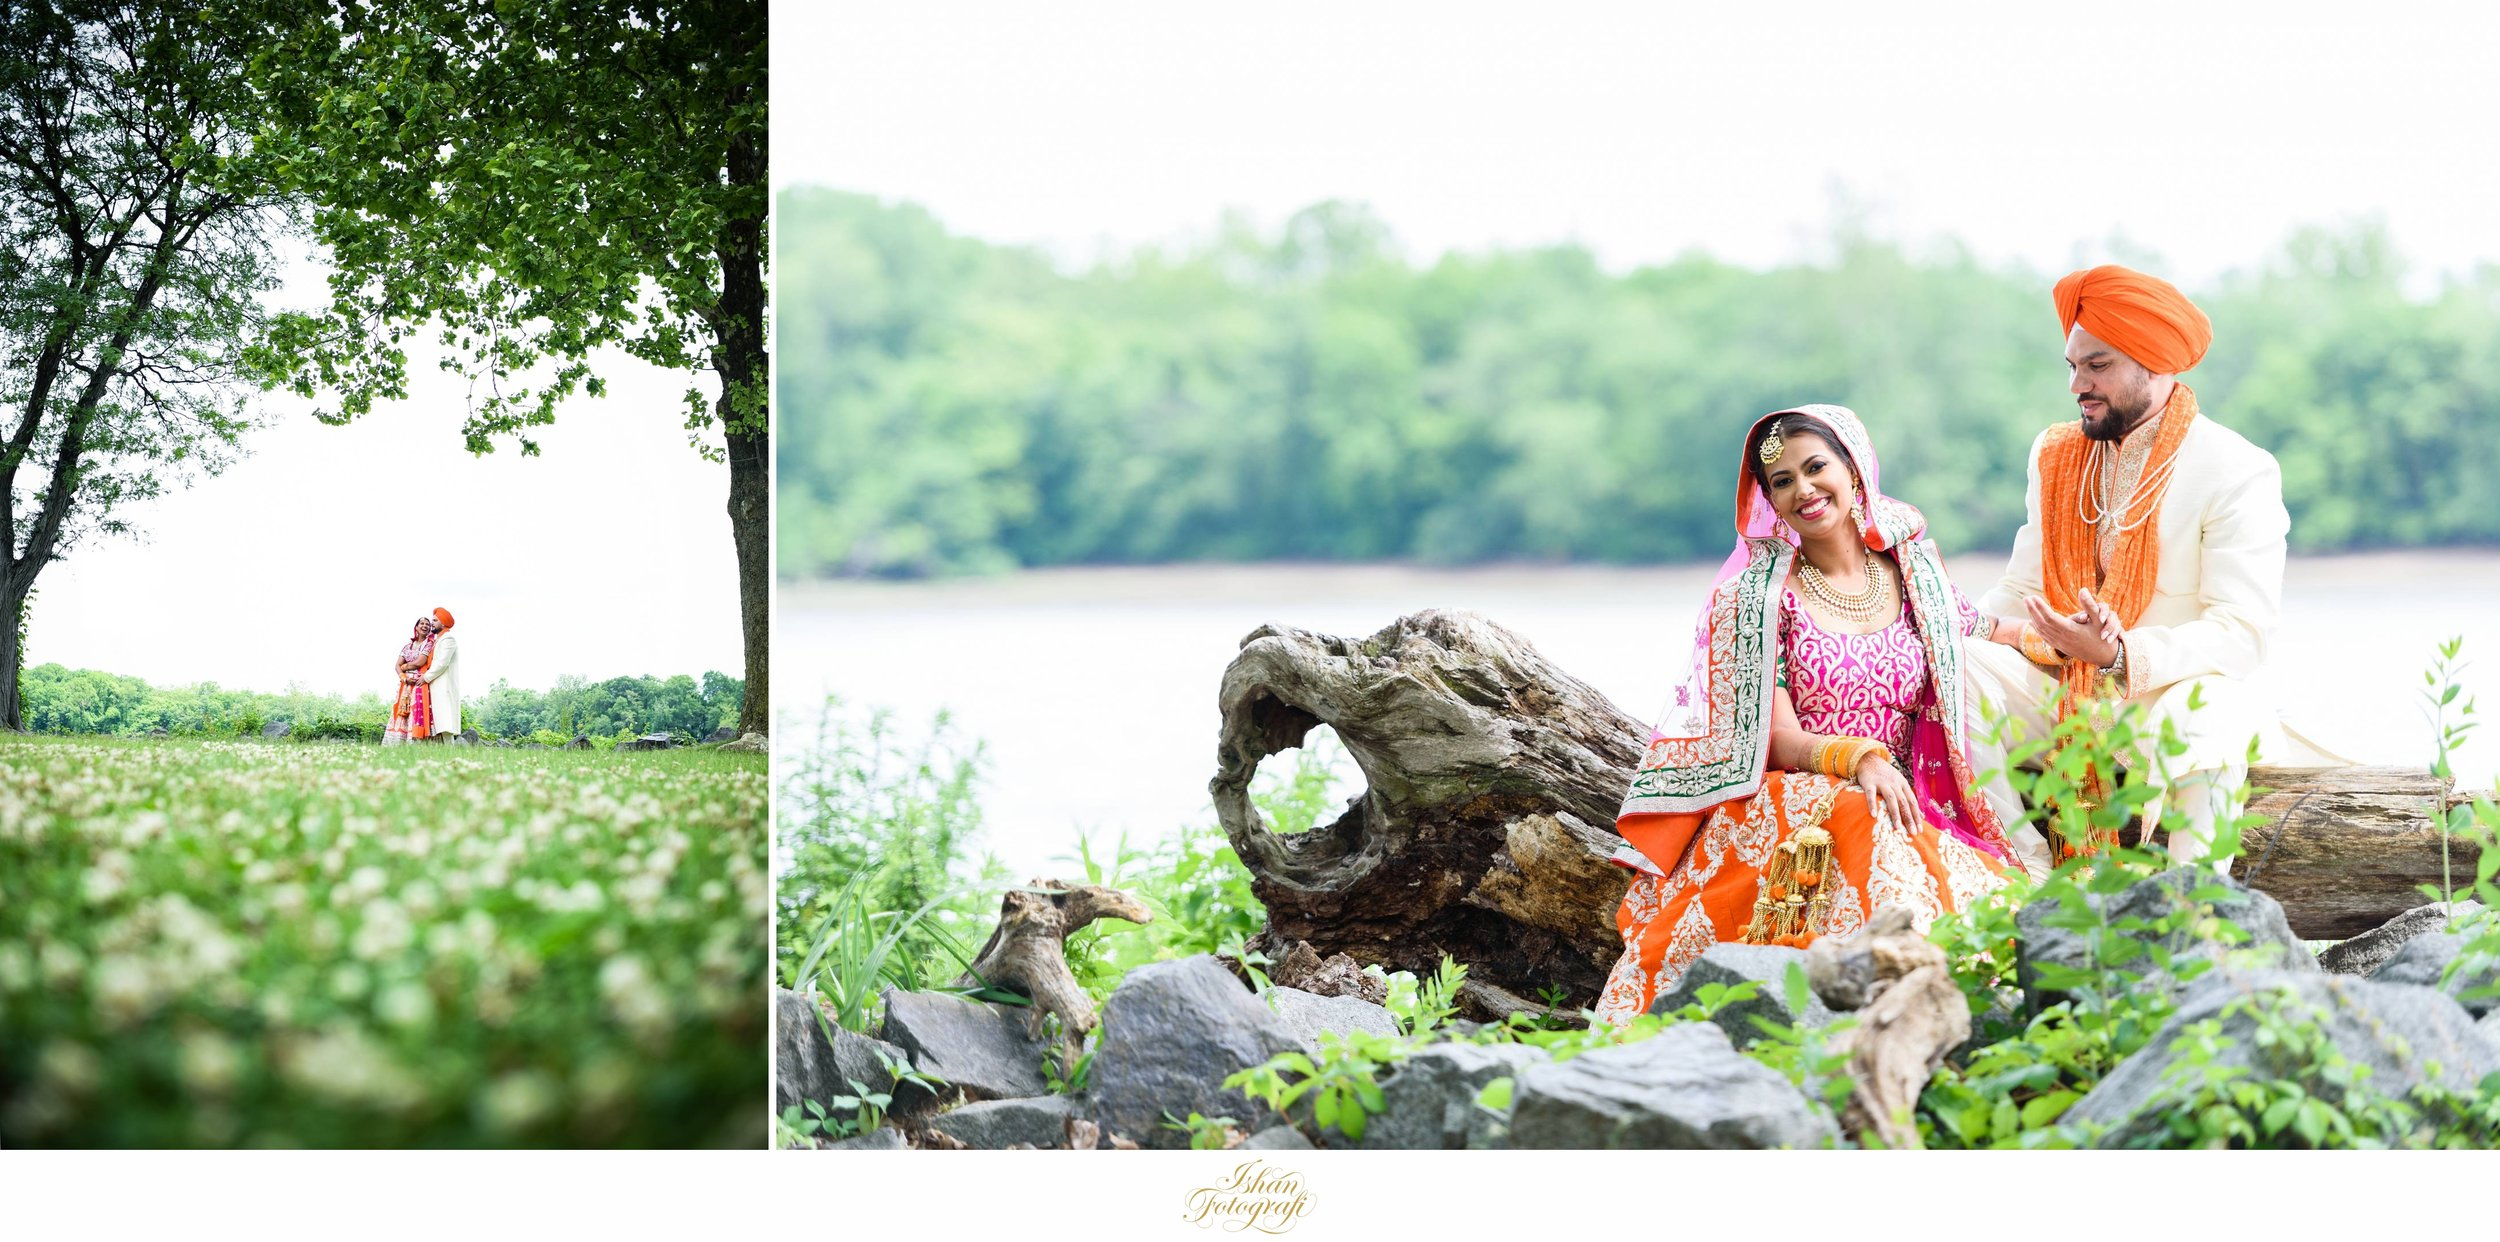 Ishan fotografi believes in capturing & creating genuine pictures which are meaningful and bear significance to the bride & groom.